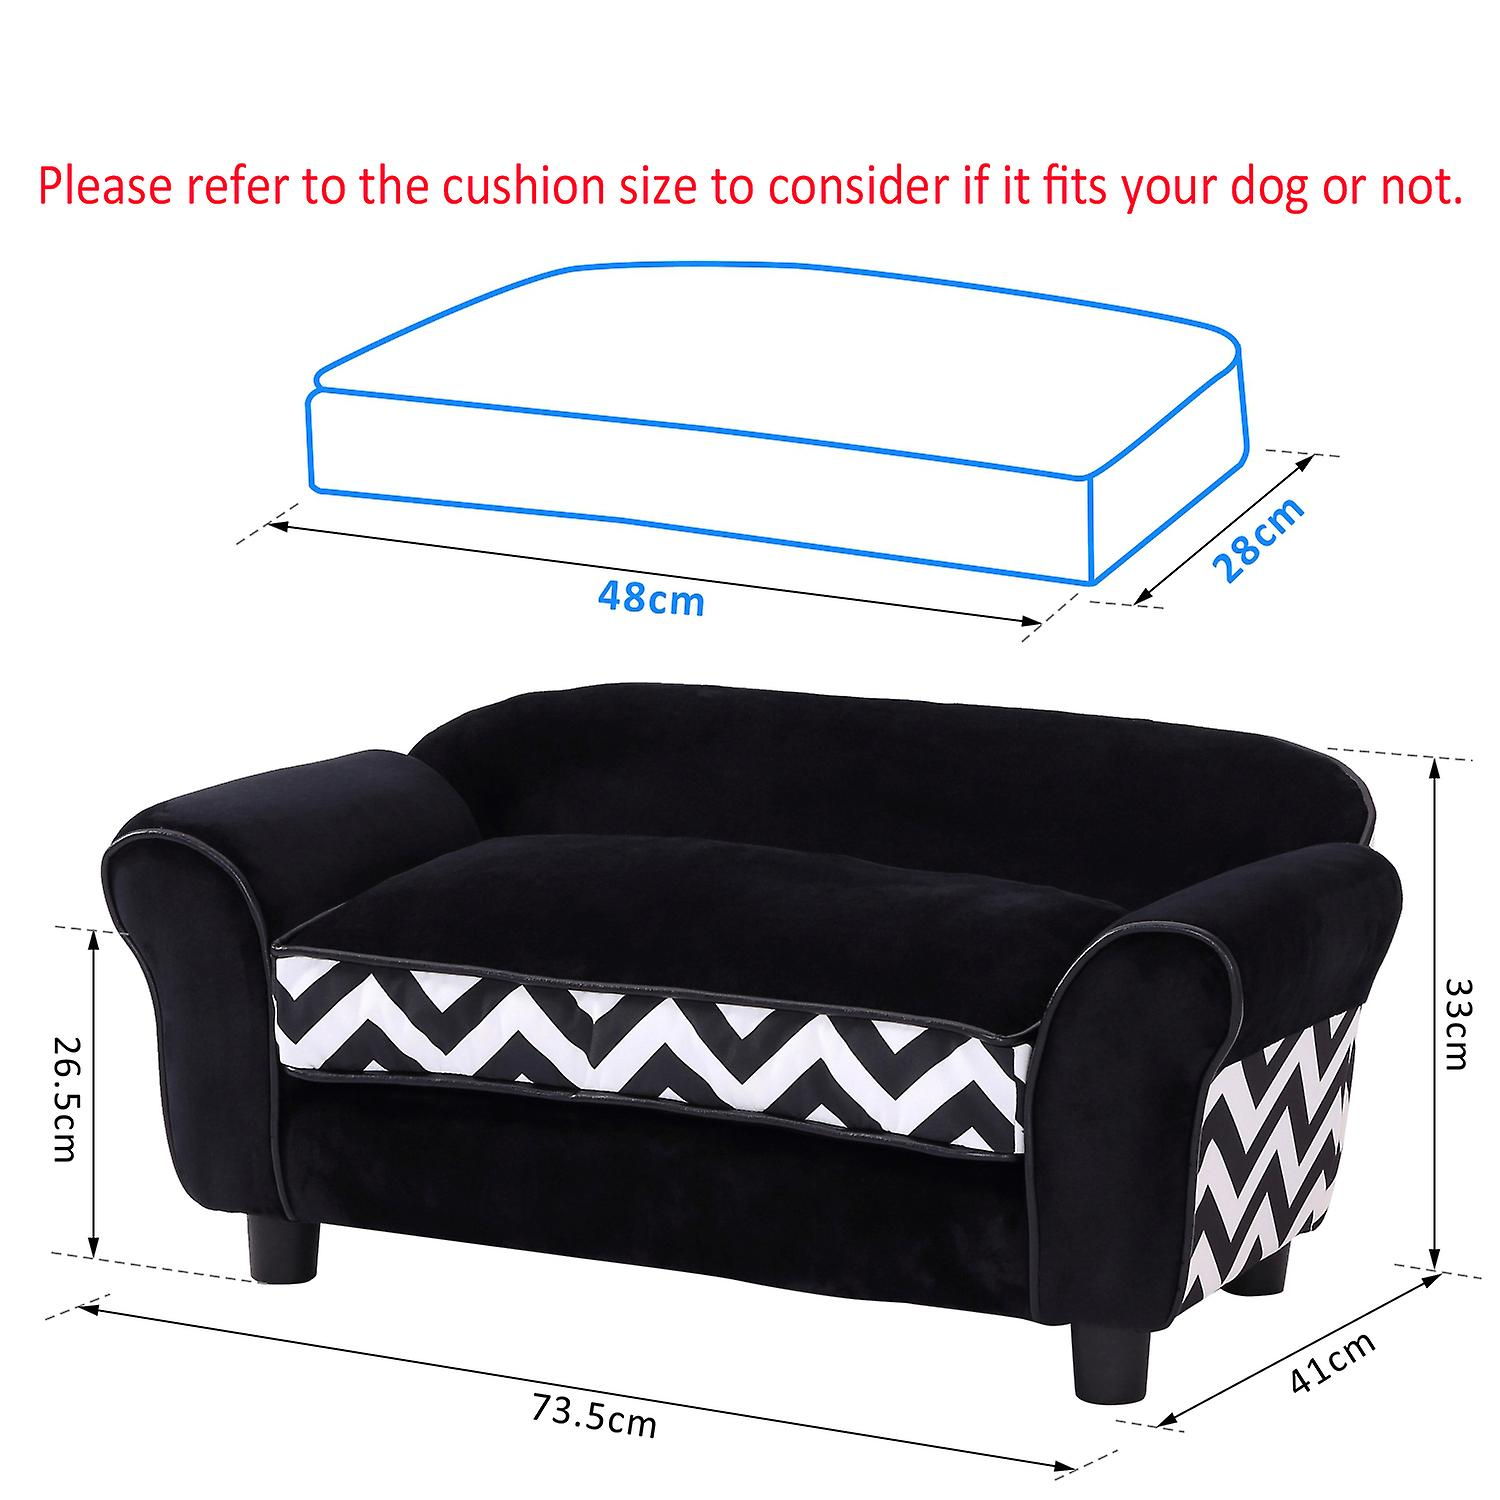 PawHut Pet Sofa Couch Dog Cat Wooden Sponge Sofa Bed Lounge Comfortable Luxury w/Cushion (Black)